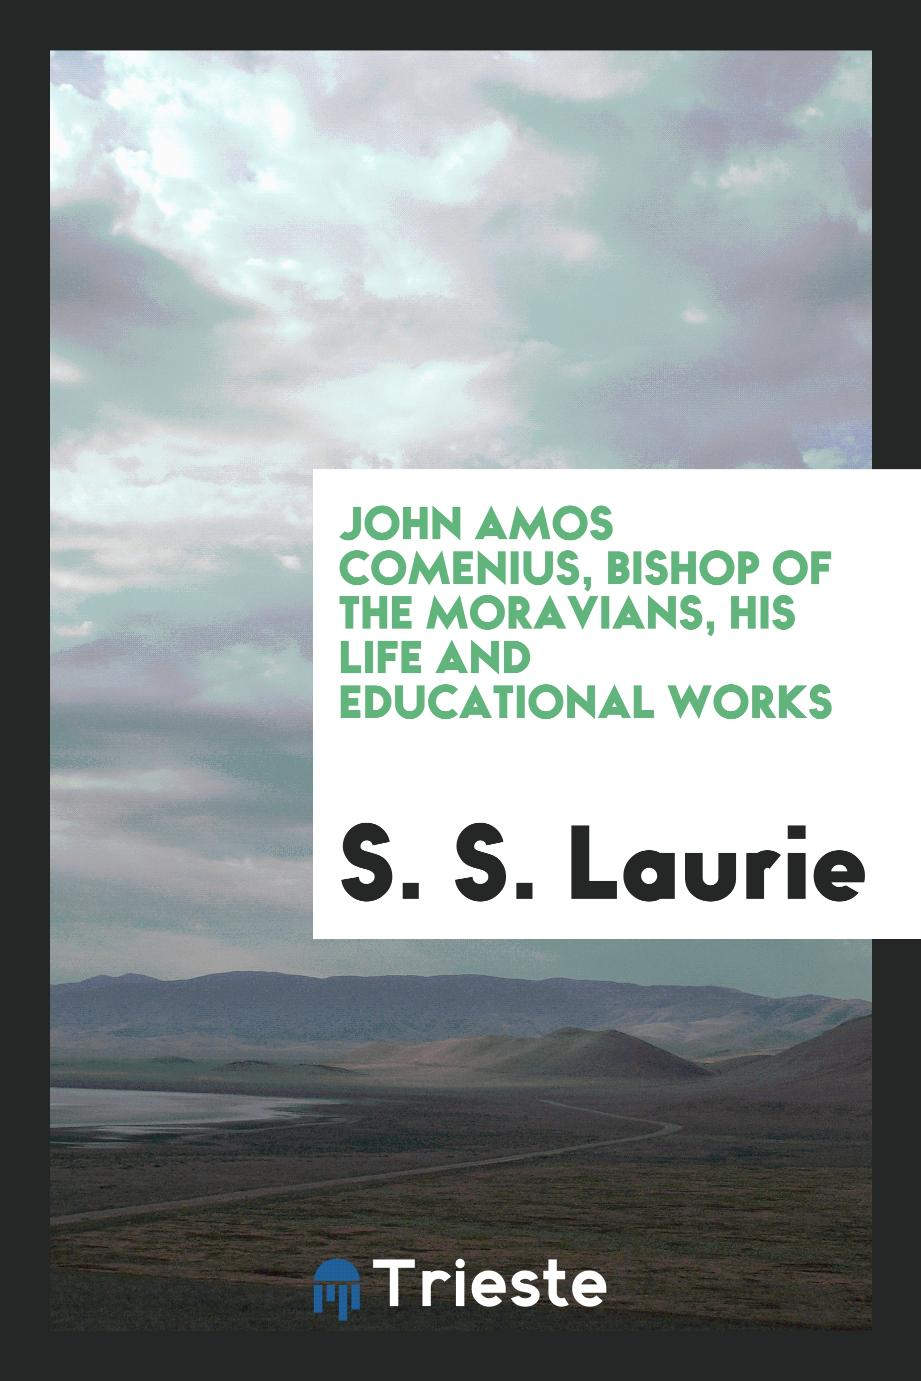 John Amos Comenius, Bishop of the Moravians, his life and educational works